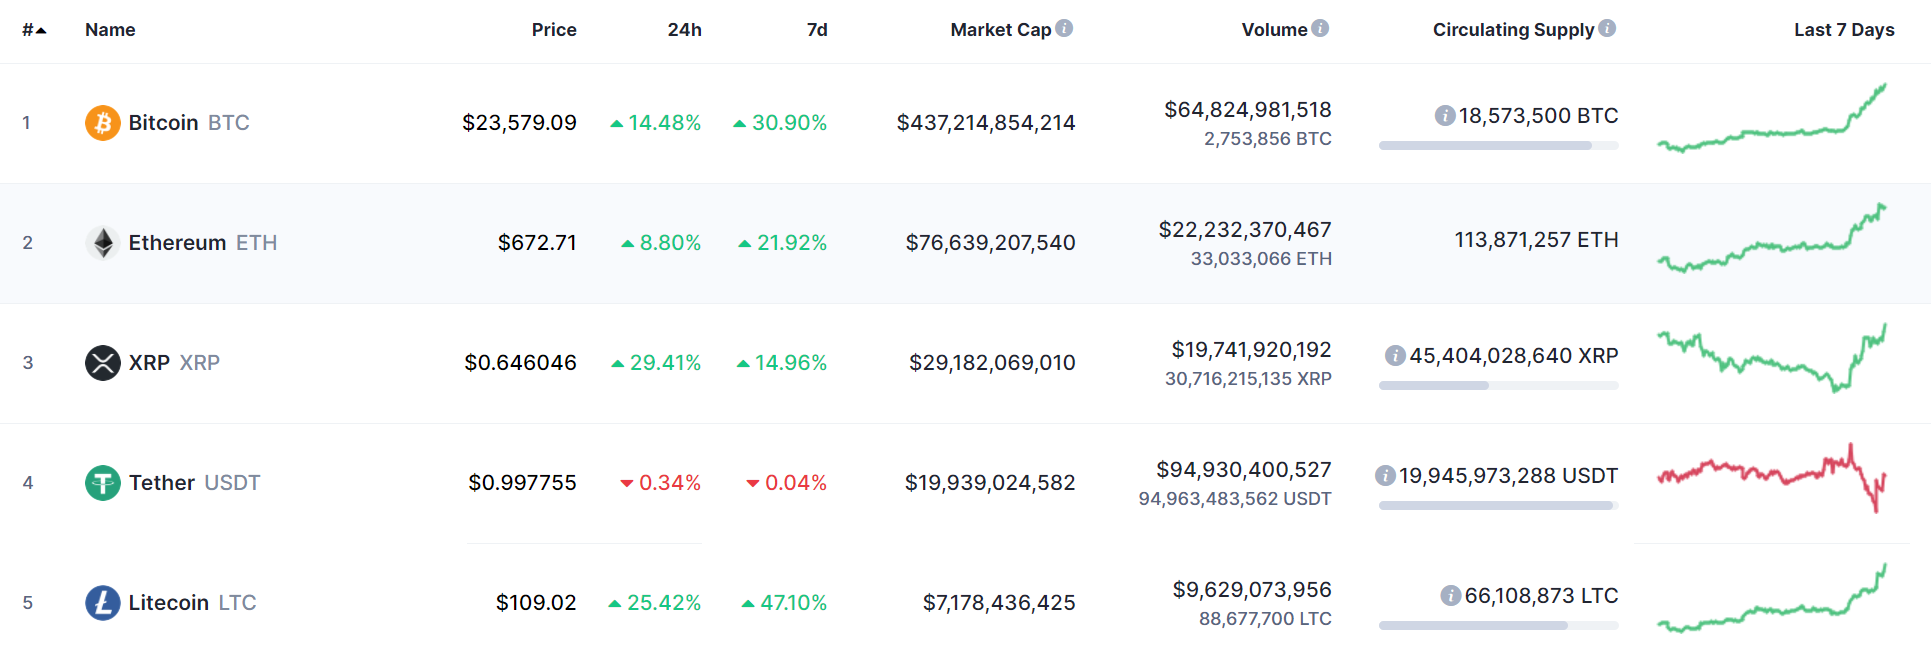 a chart of the top five cryptocurrencies by market capitalization